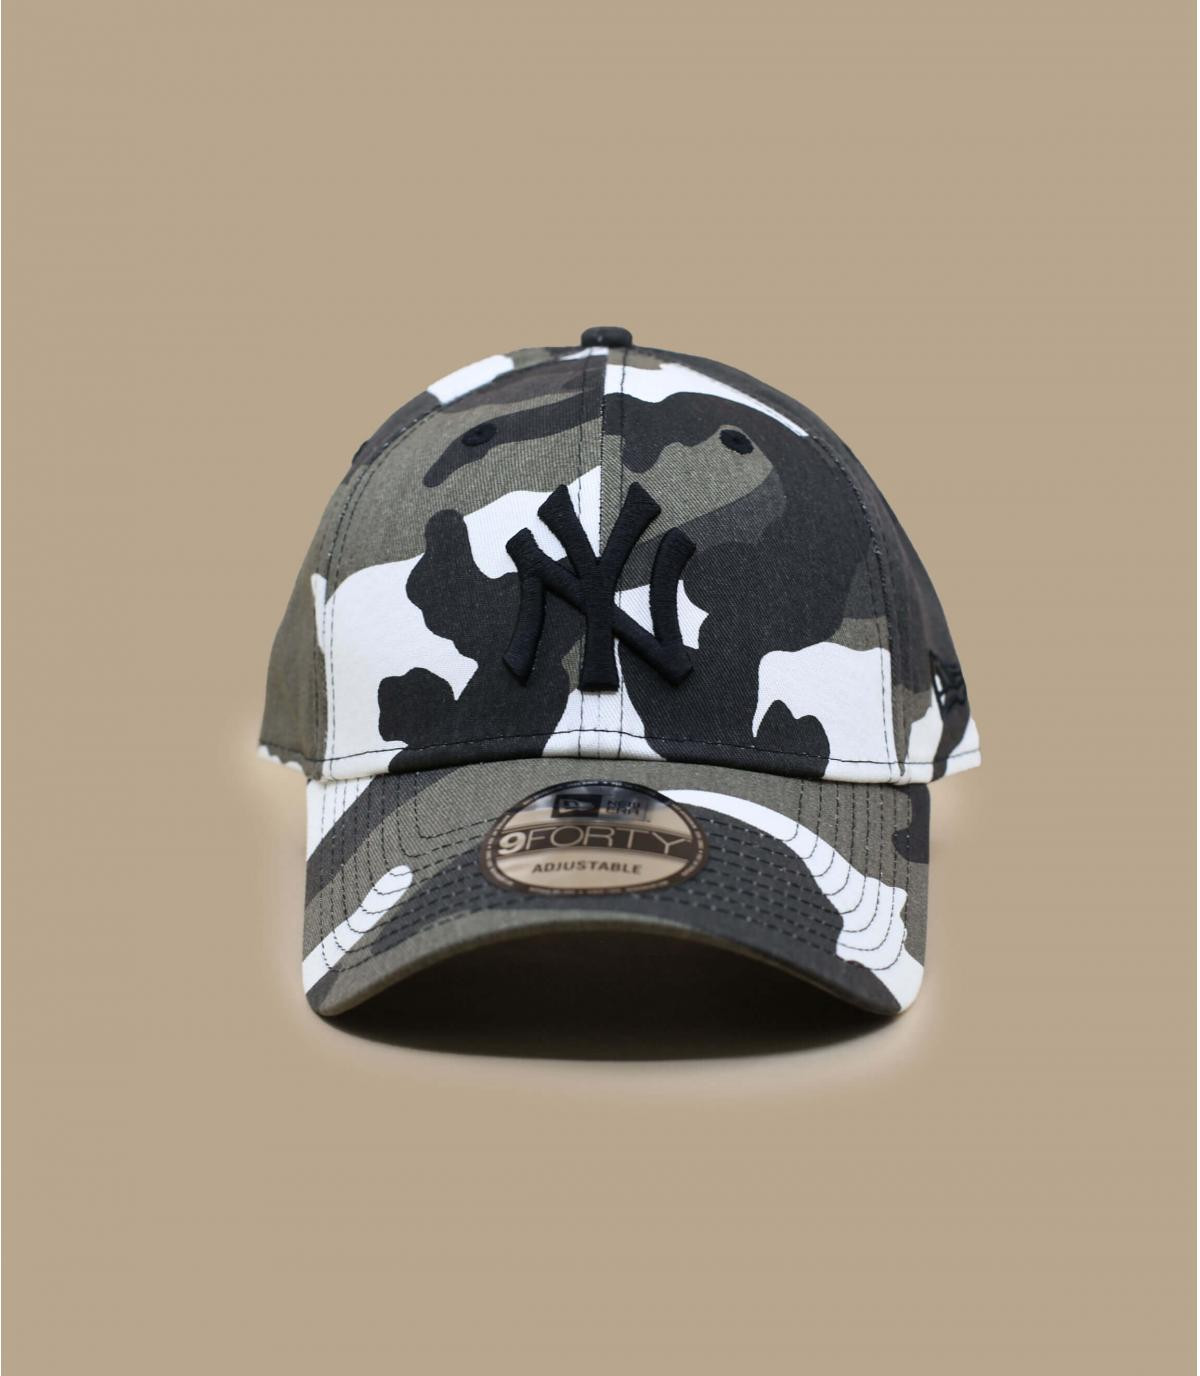 Details Camo Pack NY 940 urban - afbeeling 2